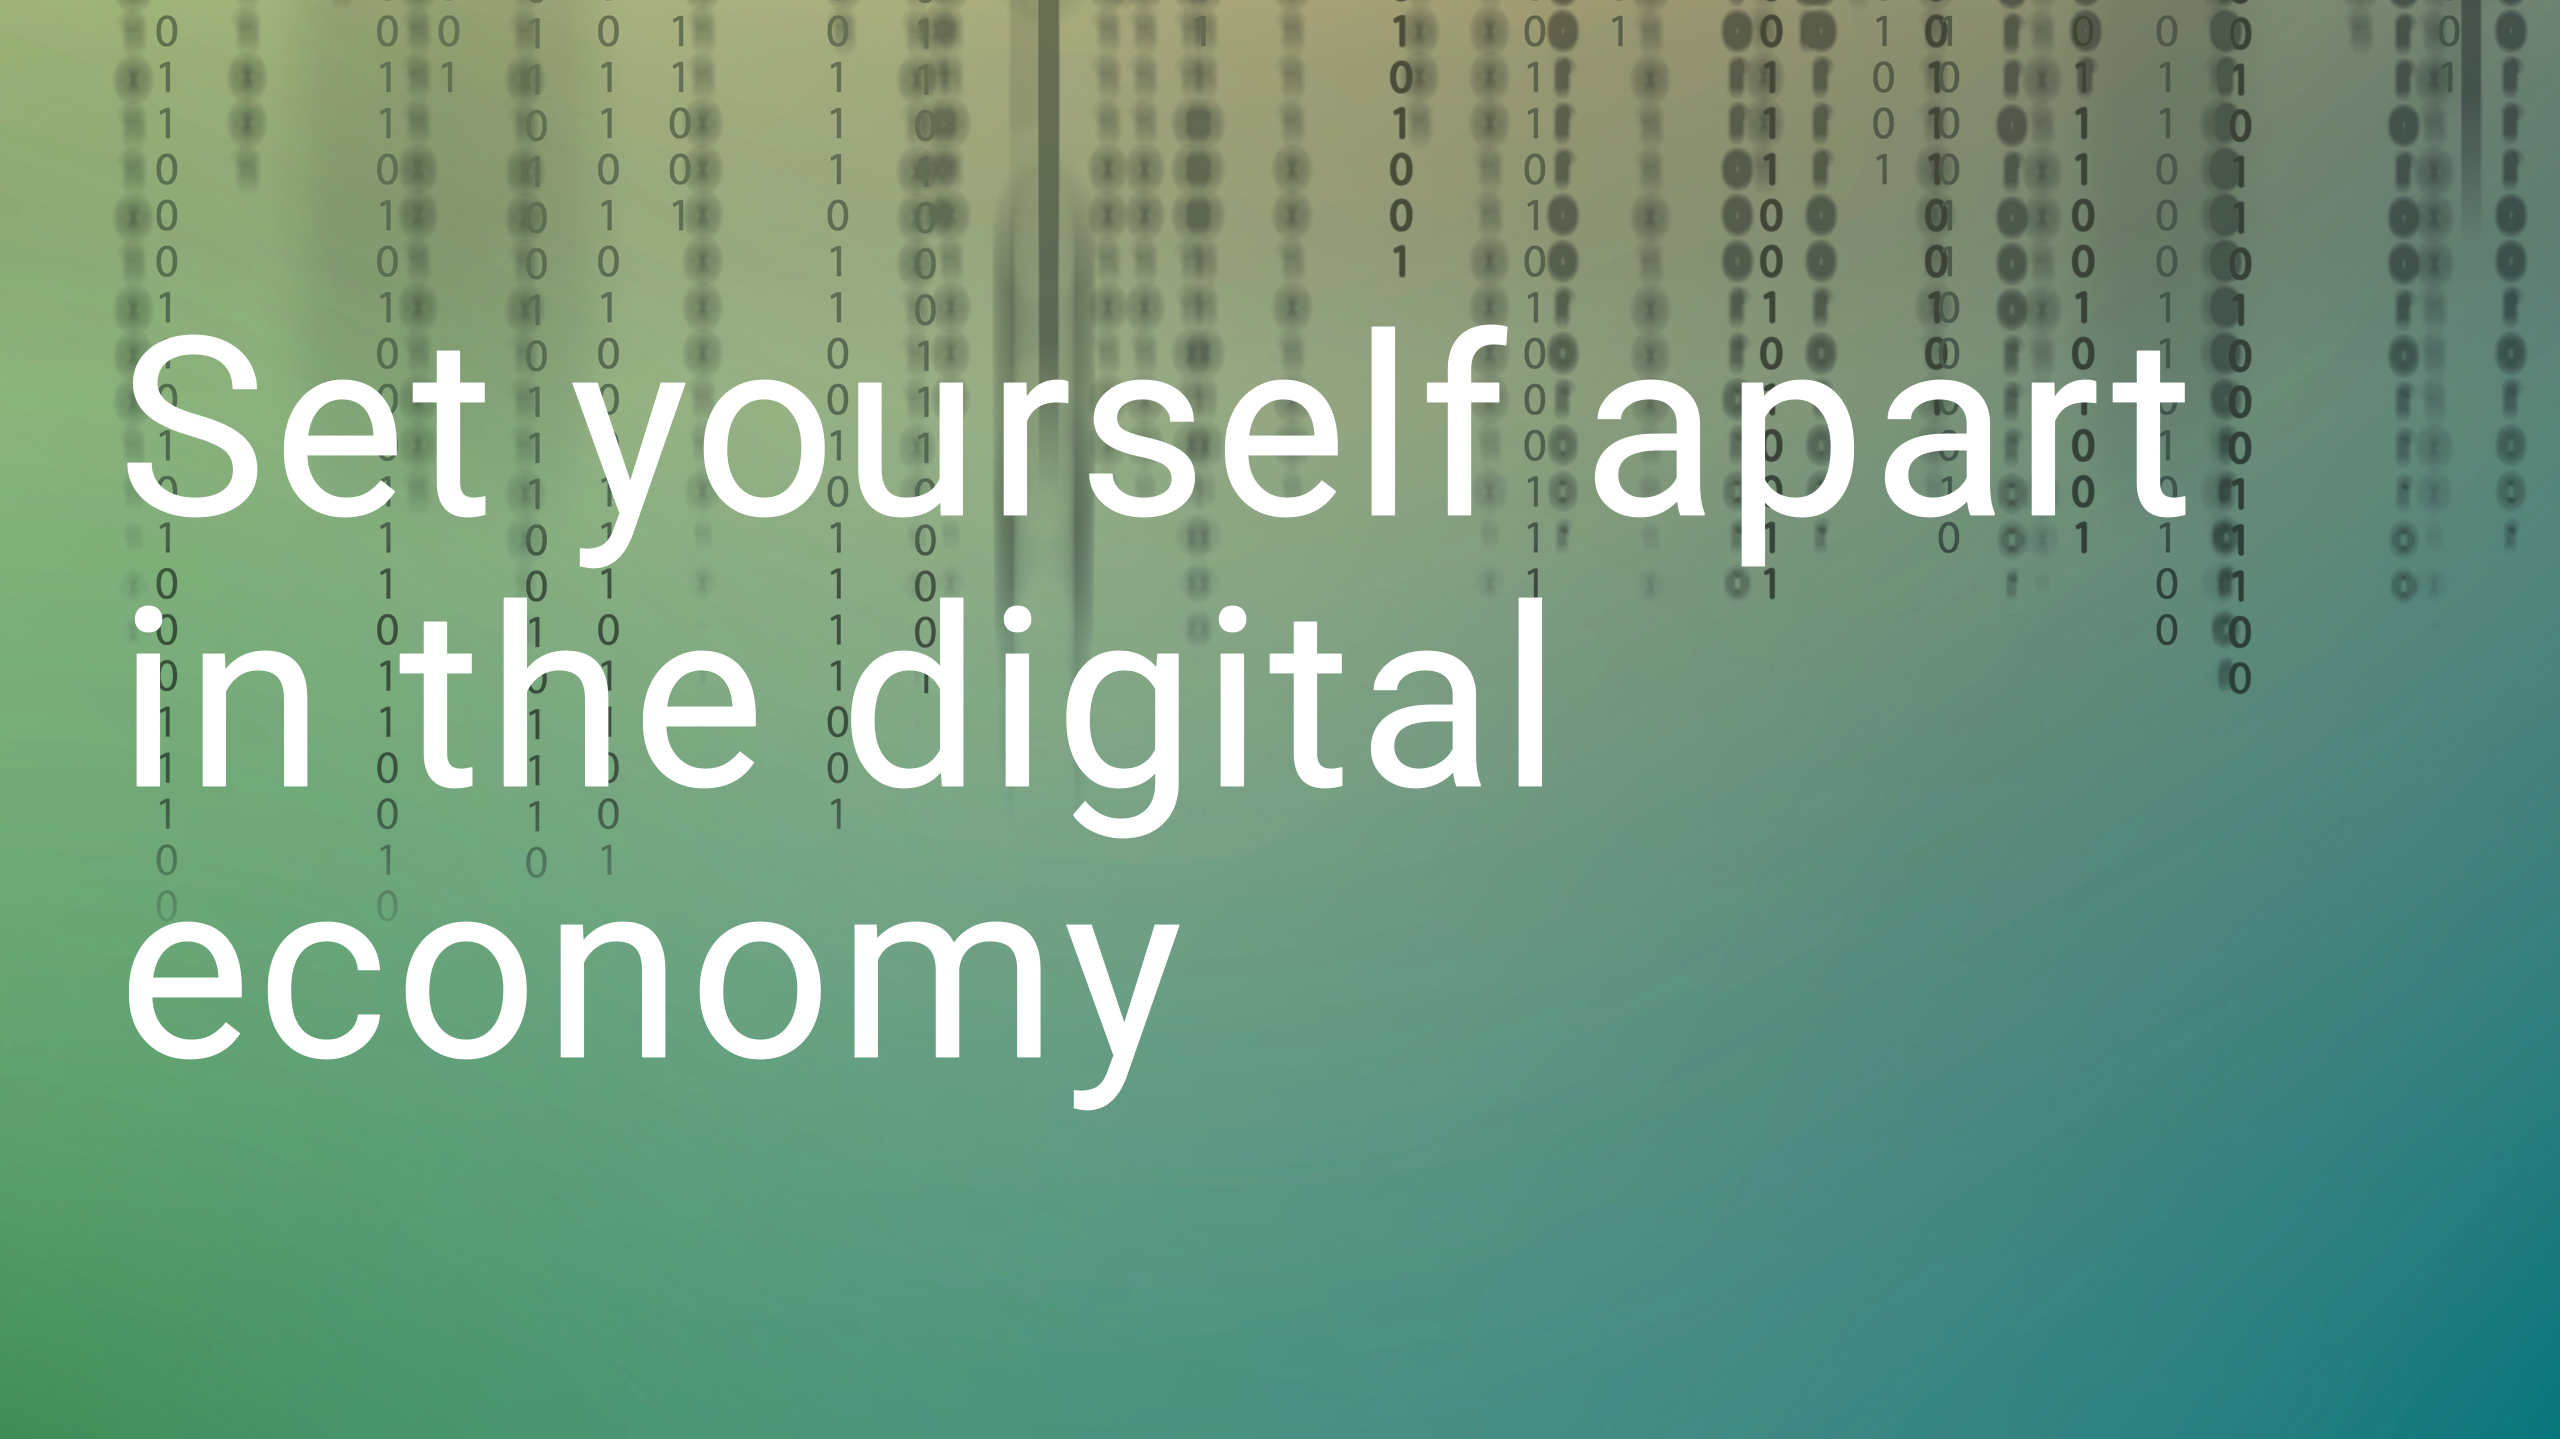 Set yourself apart in the digital economy graphic